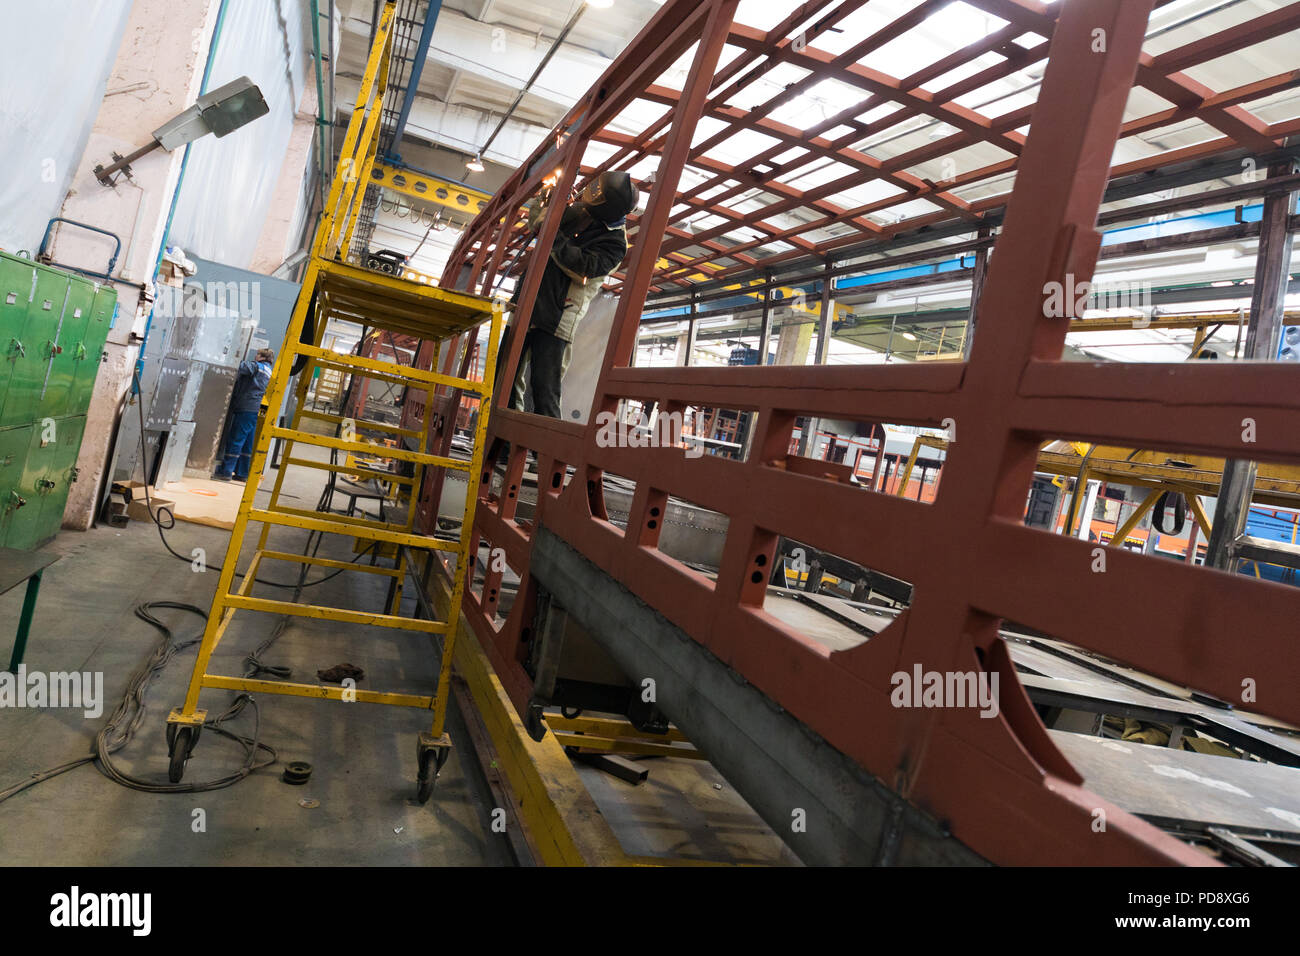 Tram production manufacture - Stock Image